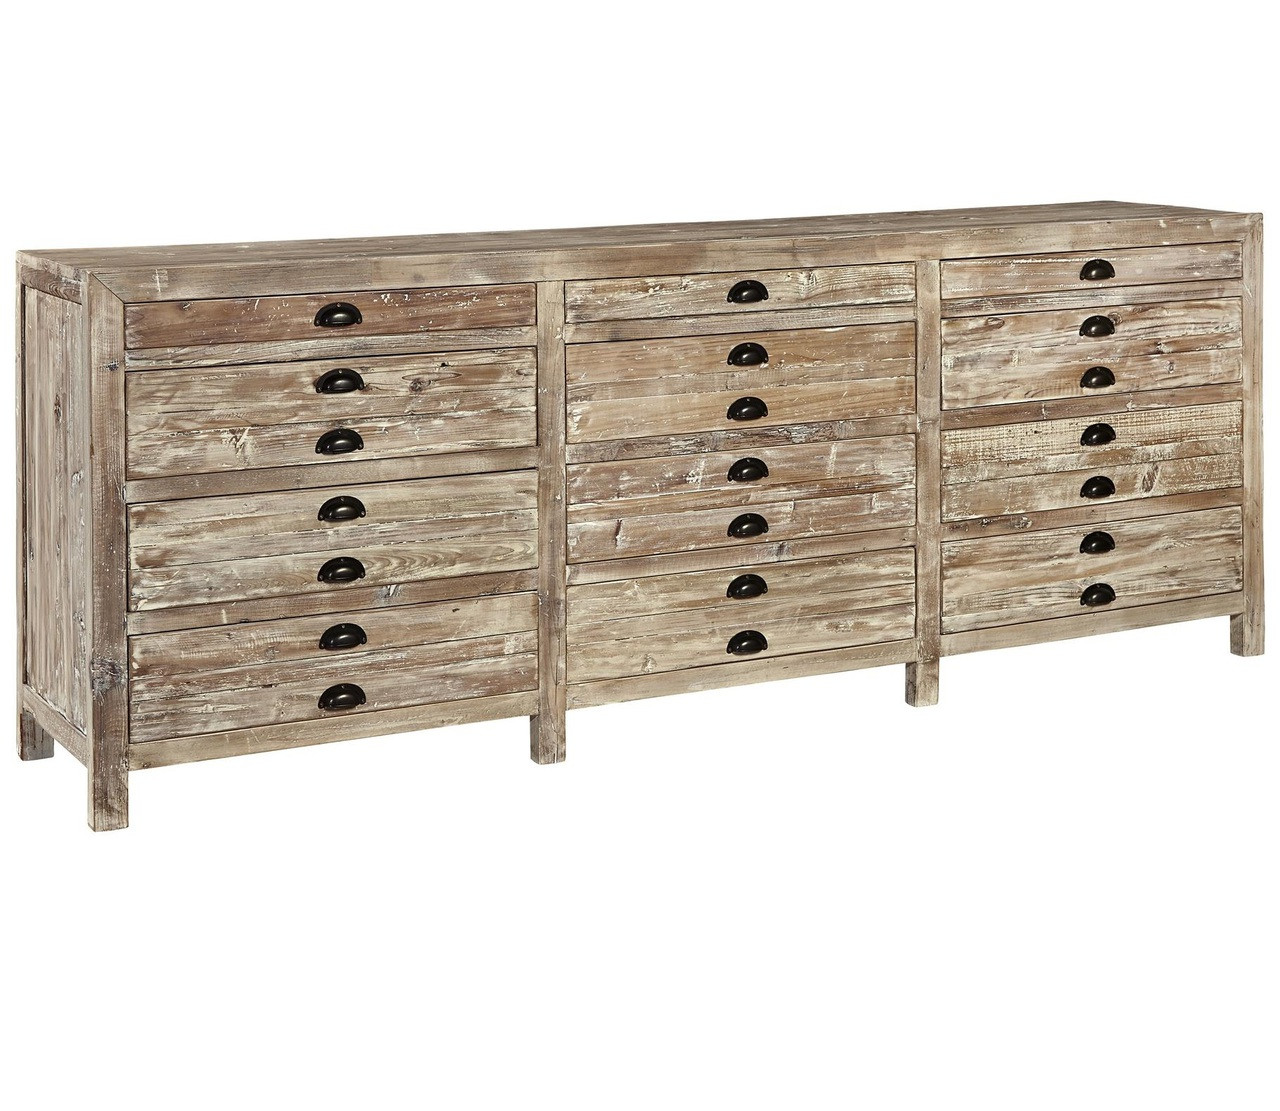 Charmant Apothecary Reclaimed Wood 12 Drawer Storage Chest